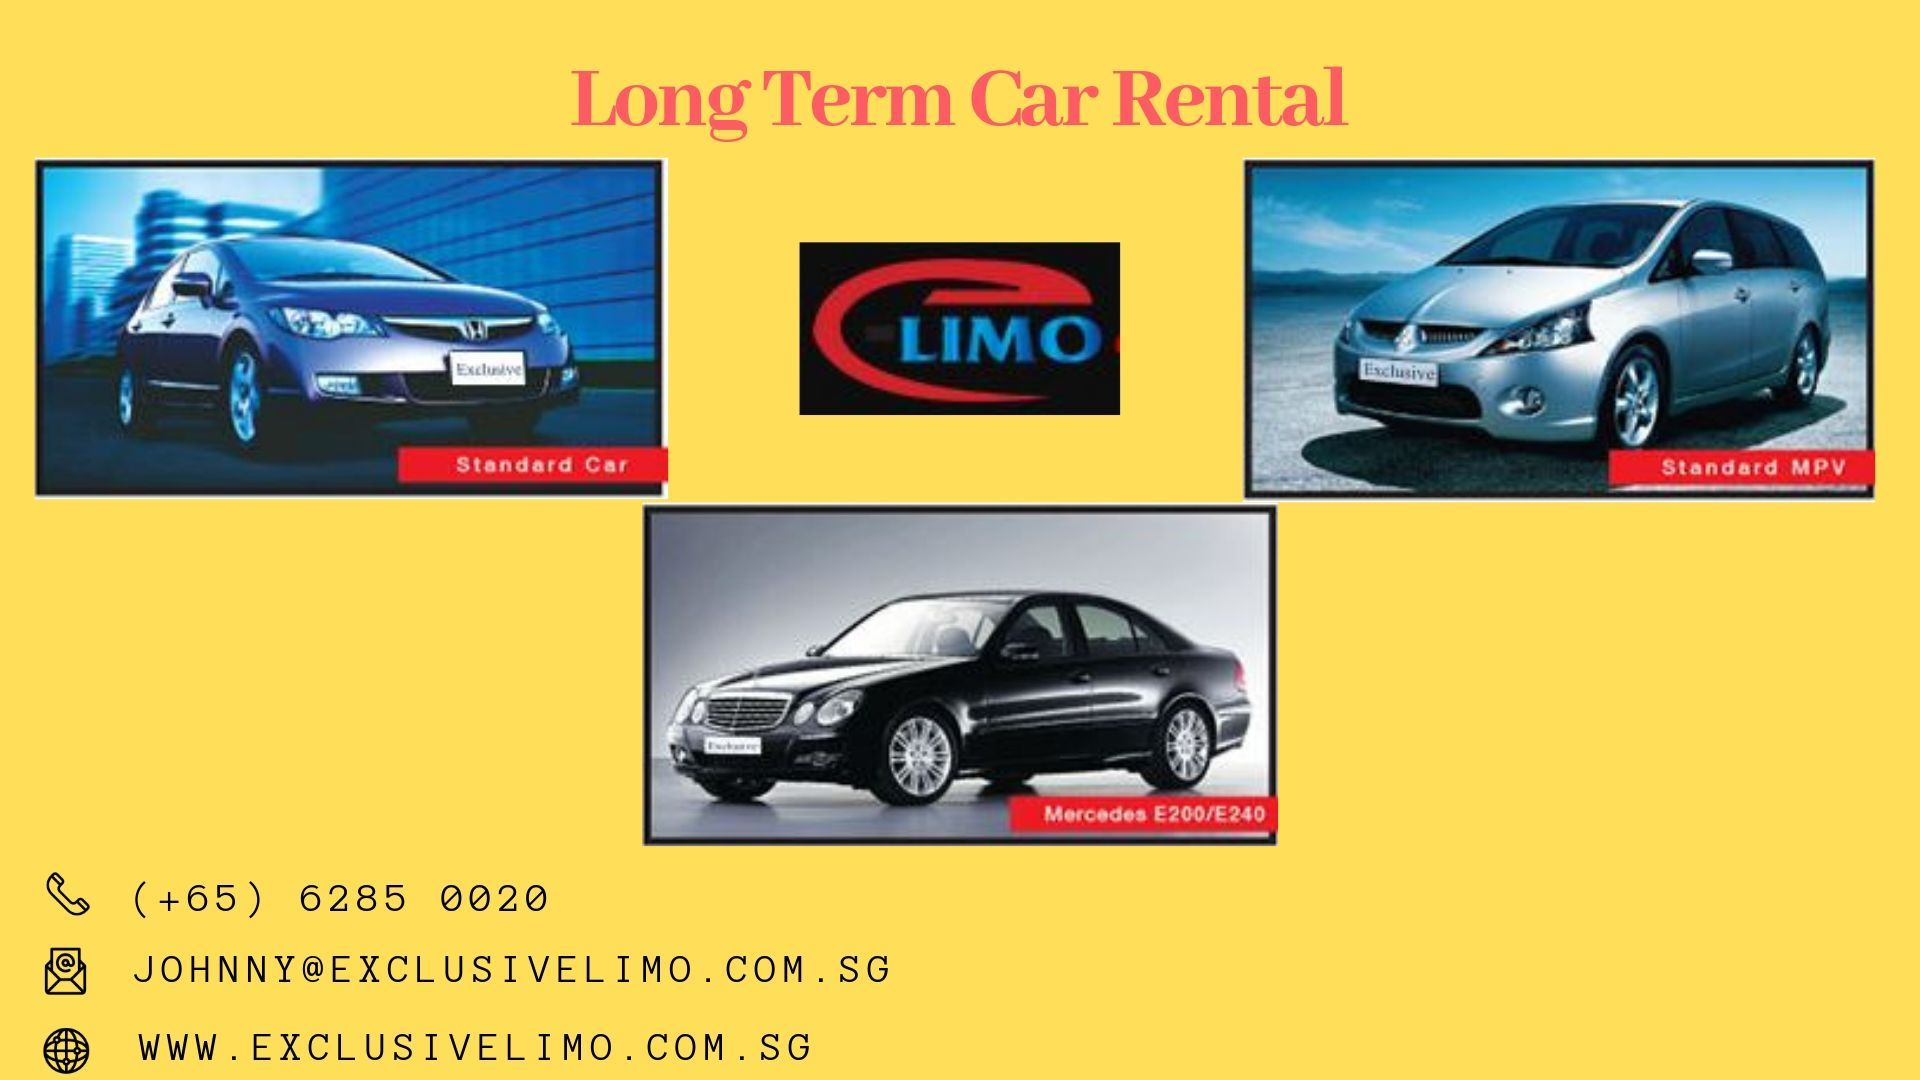 Monthly Rental Car >> Looking For Long Term Car Rental Exclusive Limo Is Offering Monthly